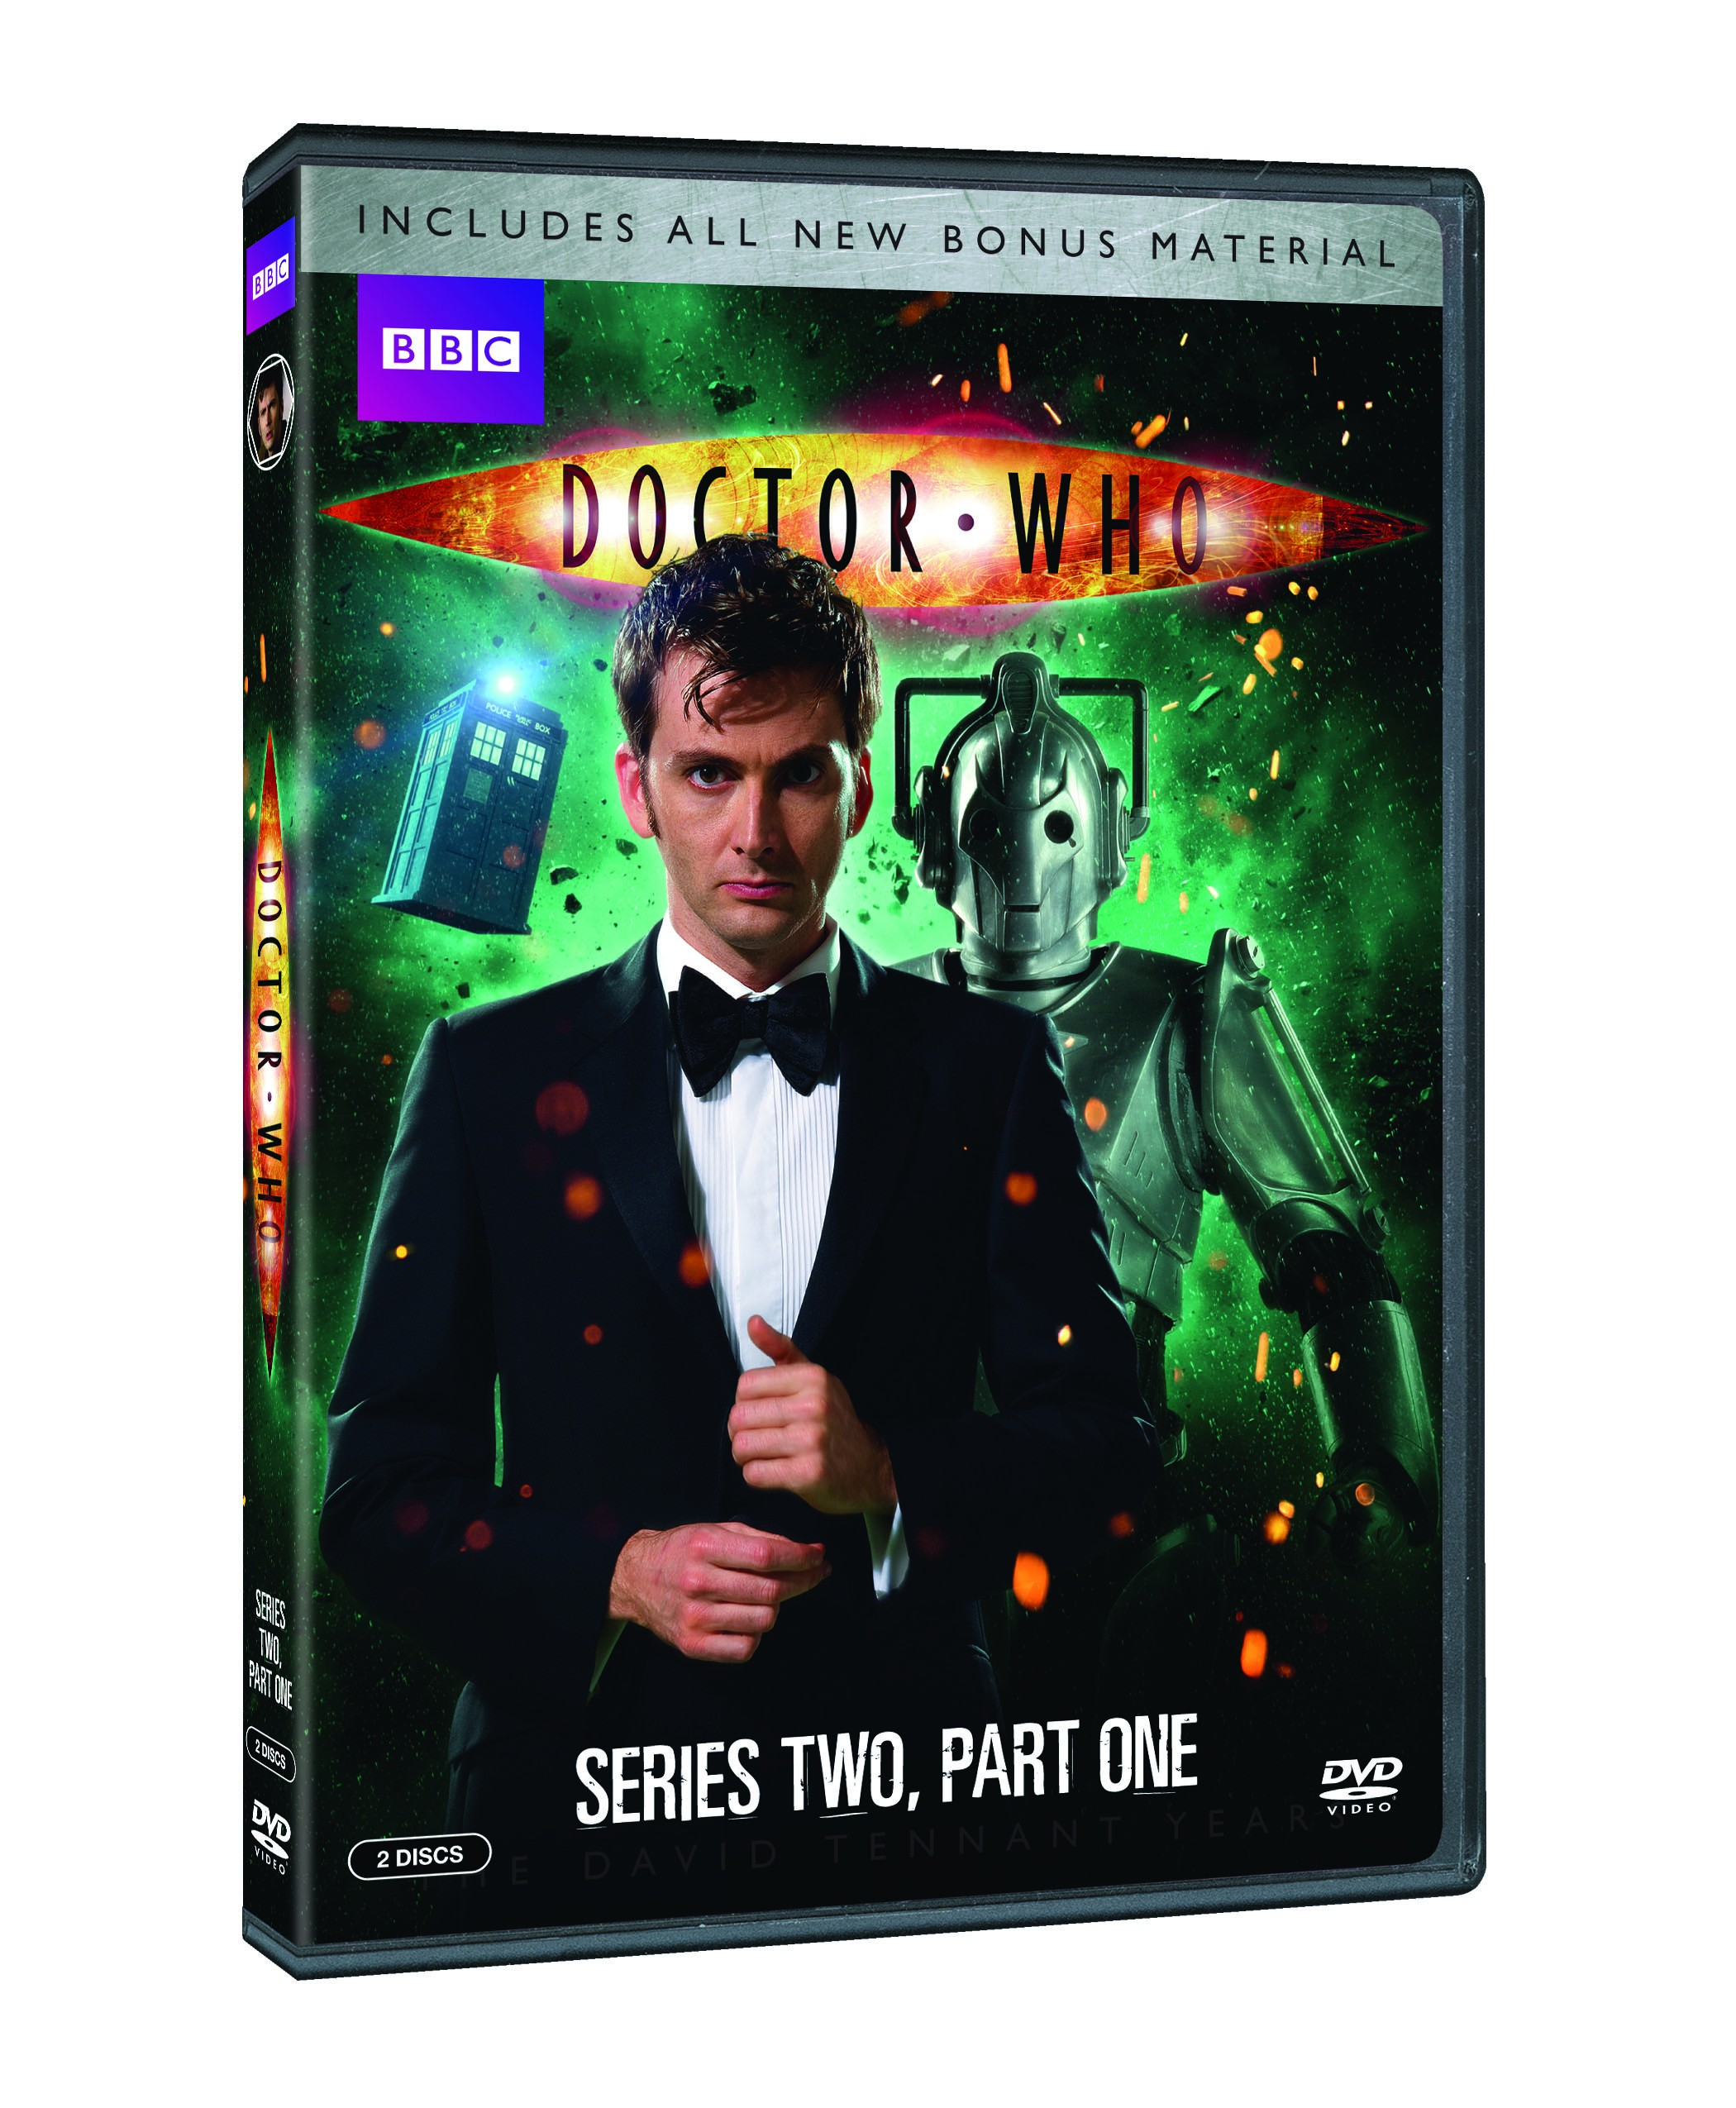 Doctor Who Series 2: Part One